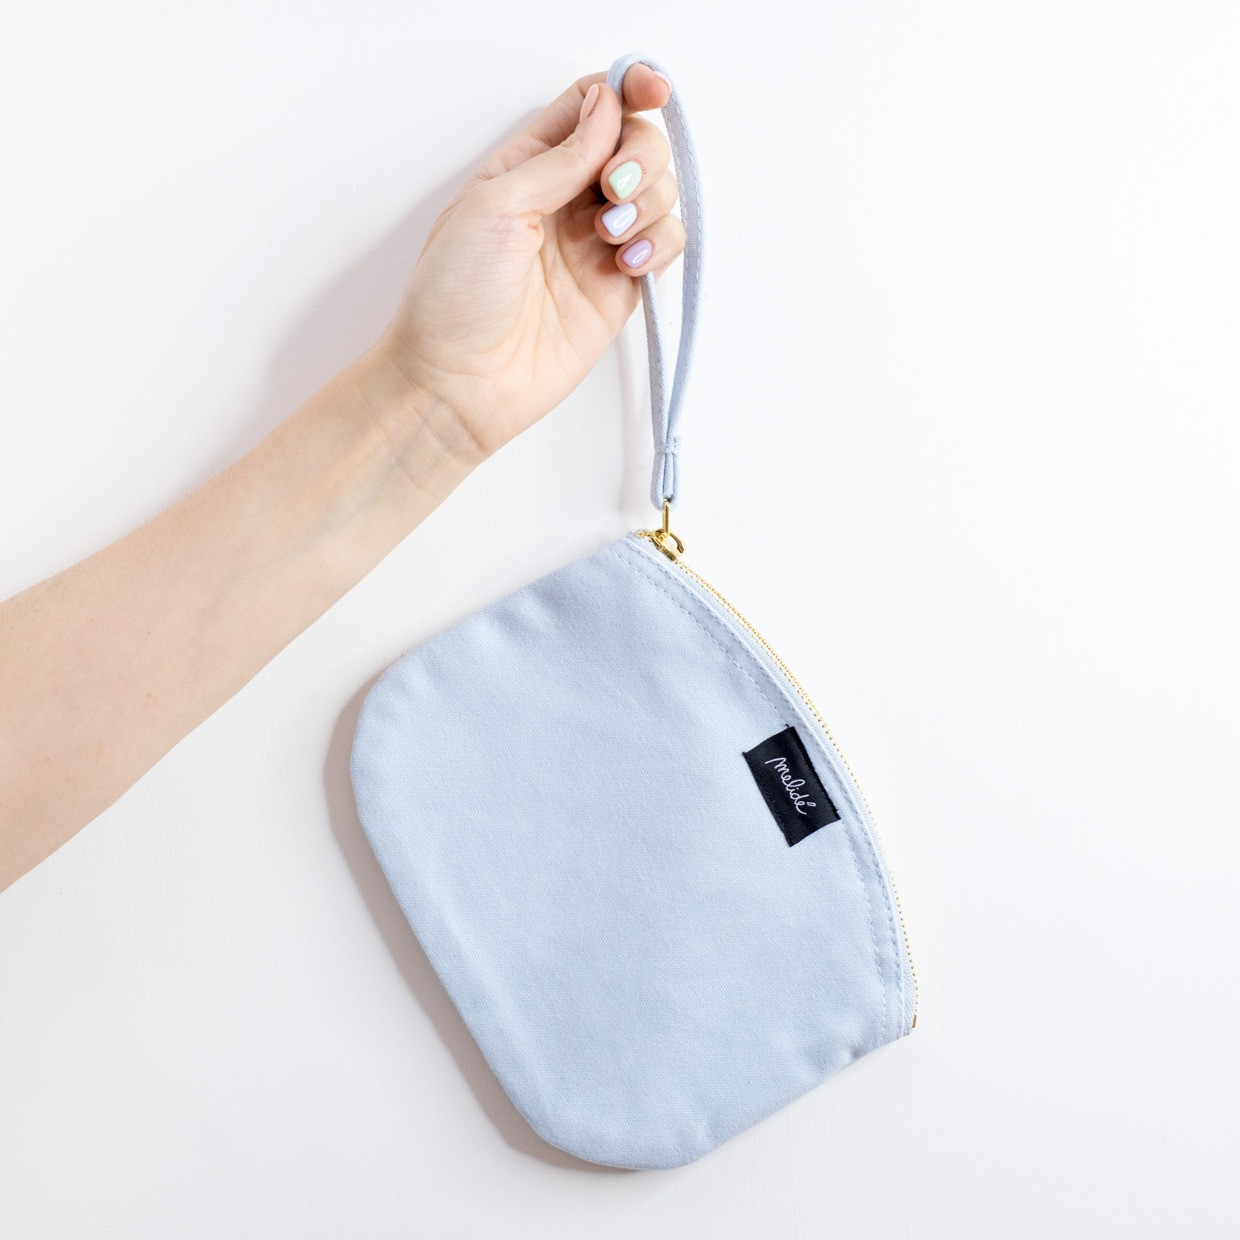 The ZIPPED POUCH M - Bilancia